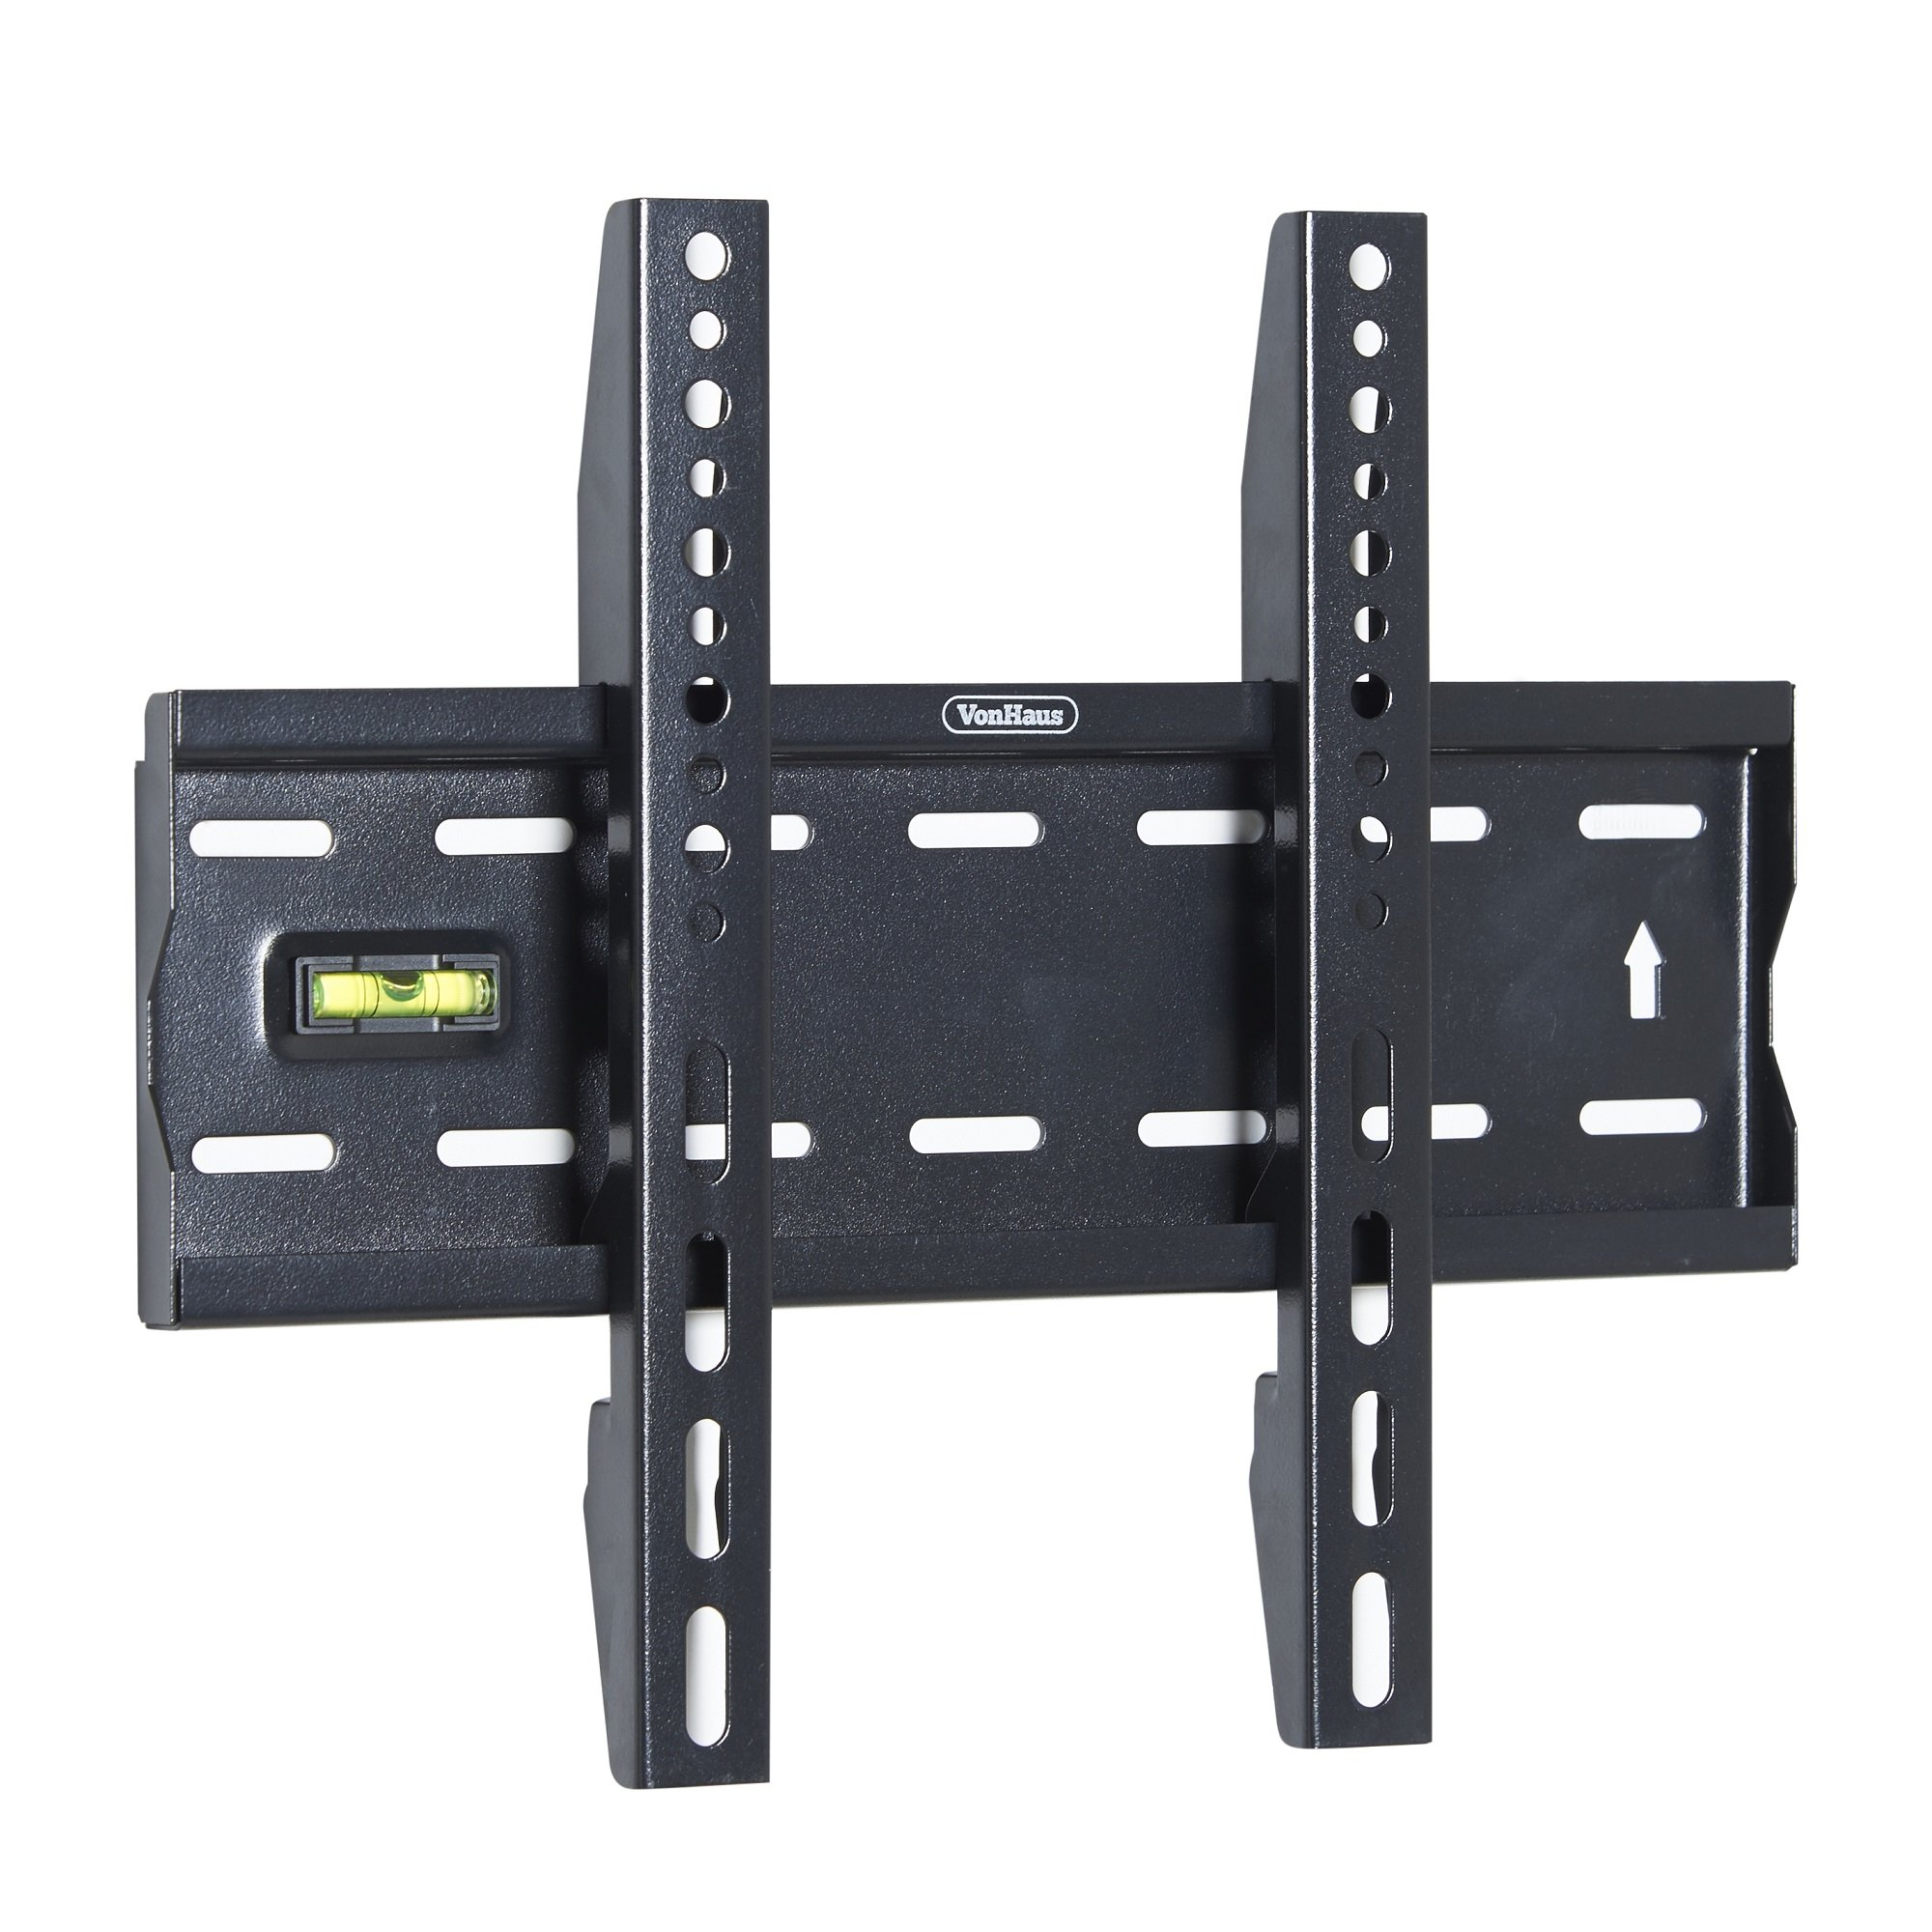 VonHaus TV Wall Mount Bracket for Most 15-42 inch LED, LCD, Plasma and Flat Screens, up to 88lbs lbs Weight Capacity, Max VESA 300x200 with Slim Profile and Bubble Level